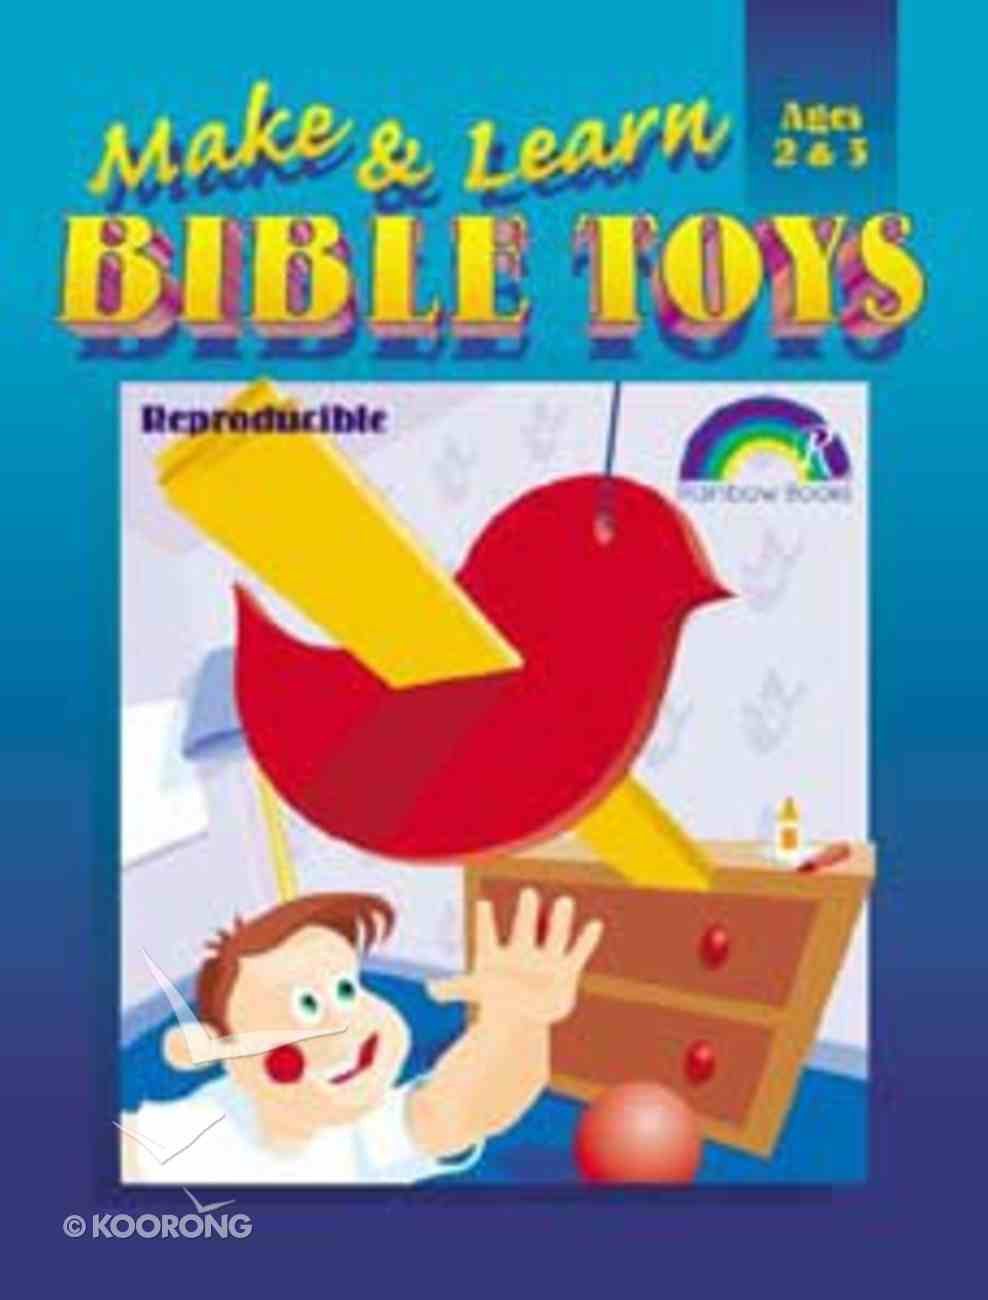 Ages 2&3 (Reproducible) (Make And Learn Bible Toys Series) Paperback